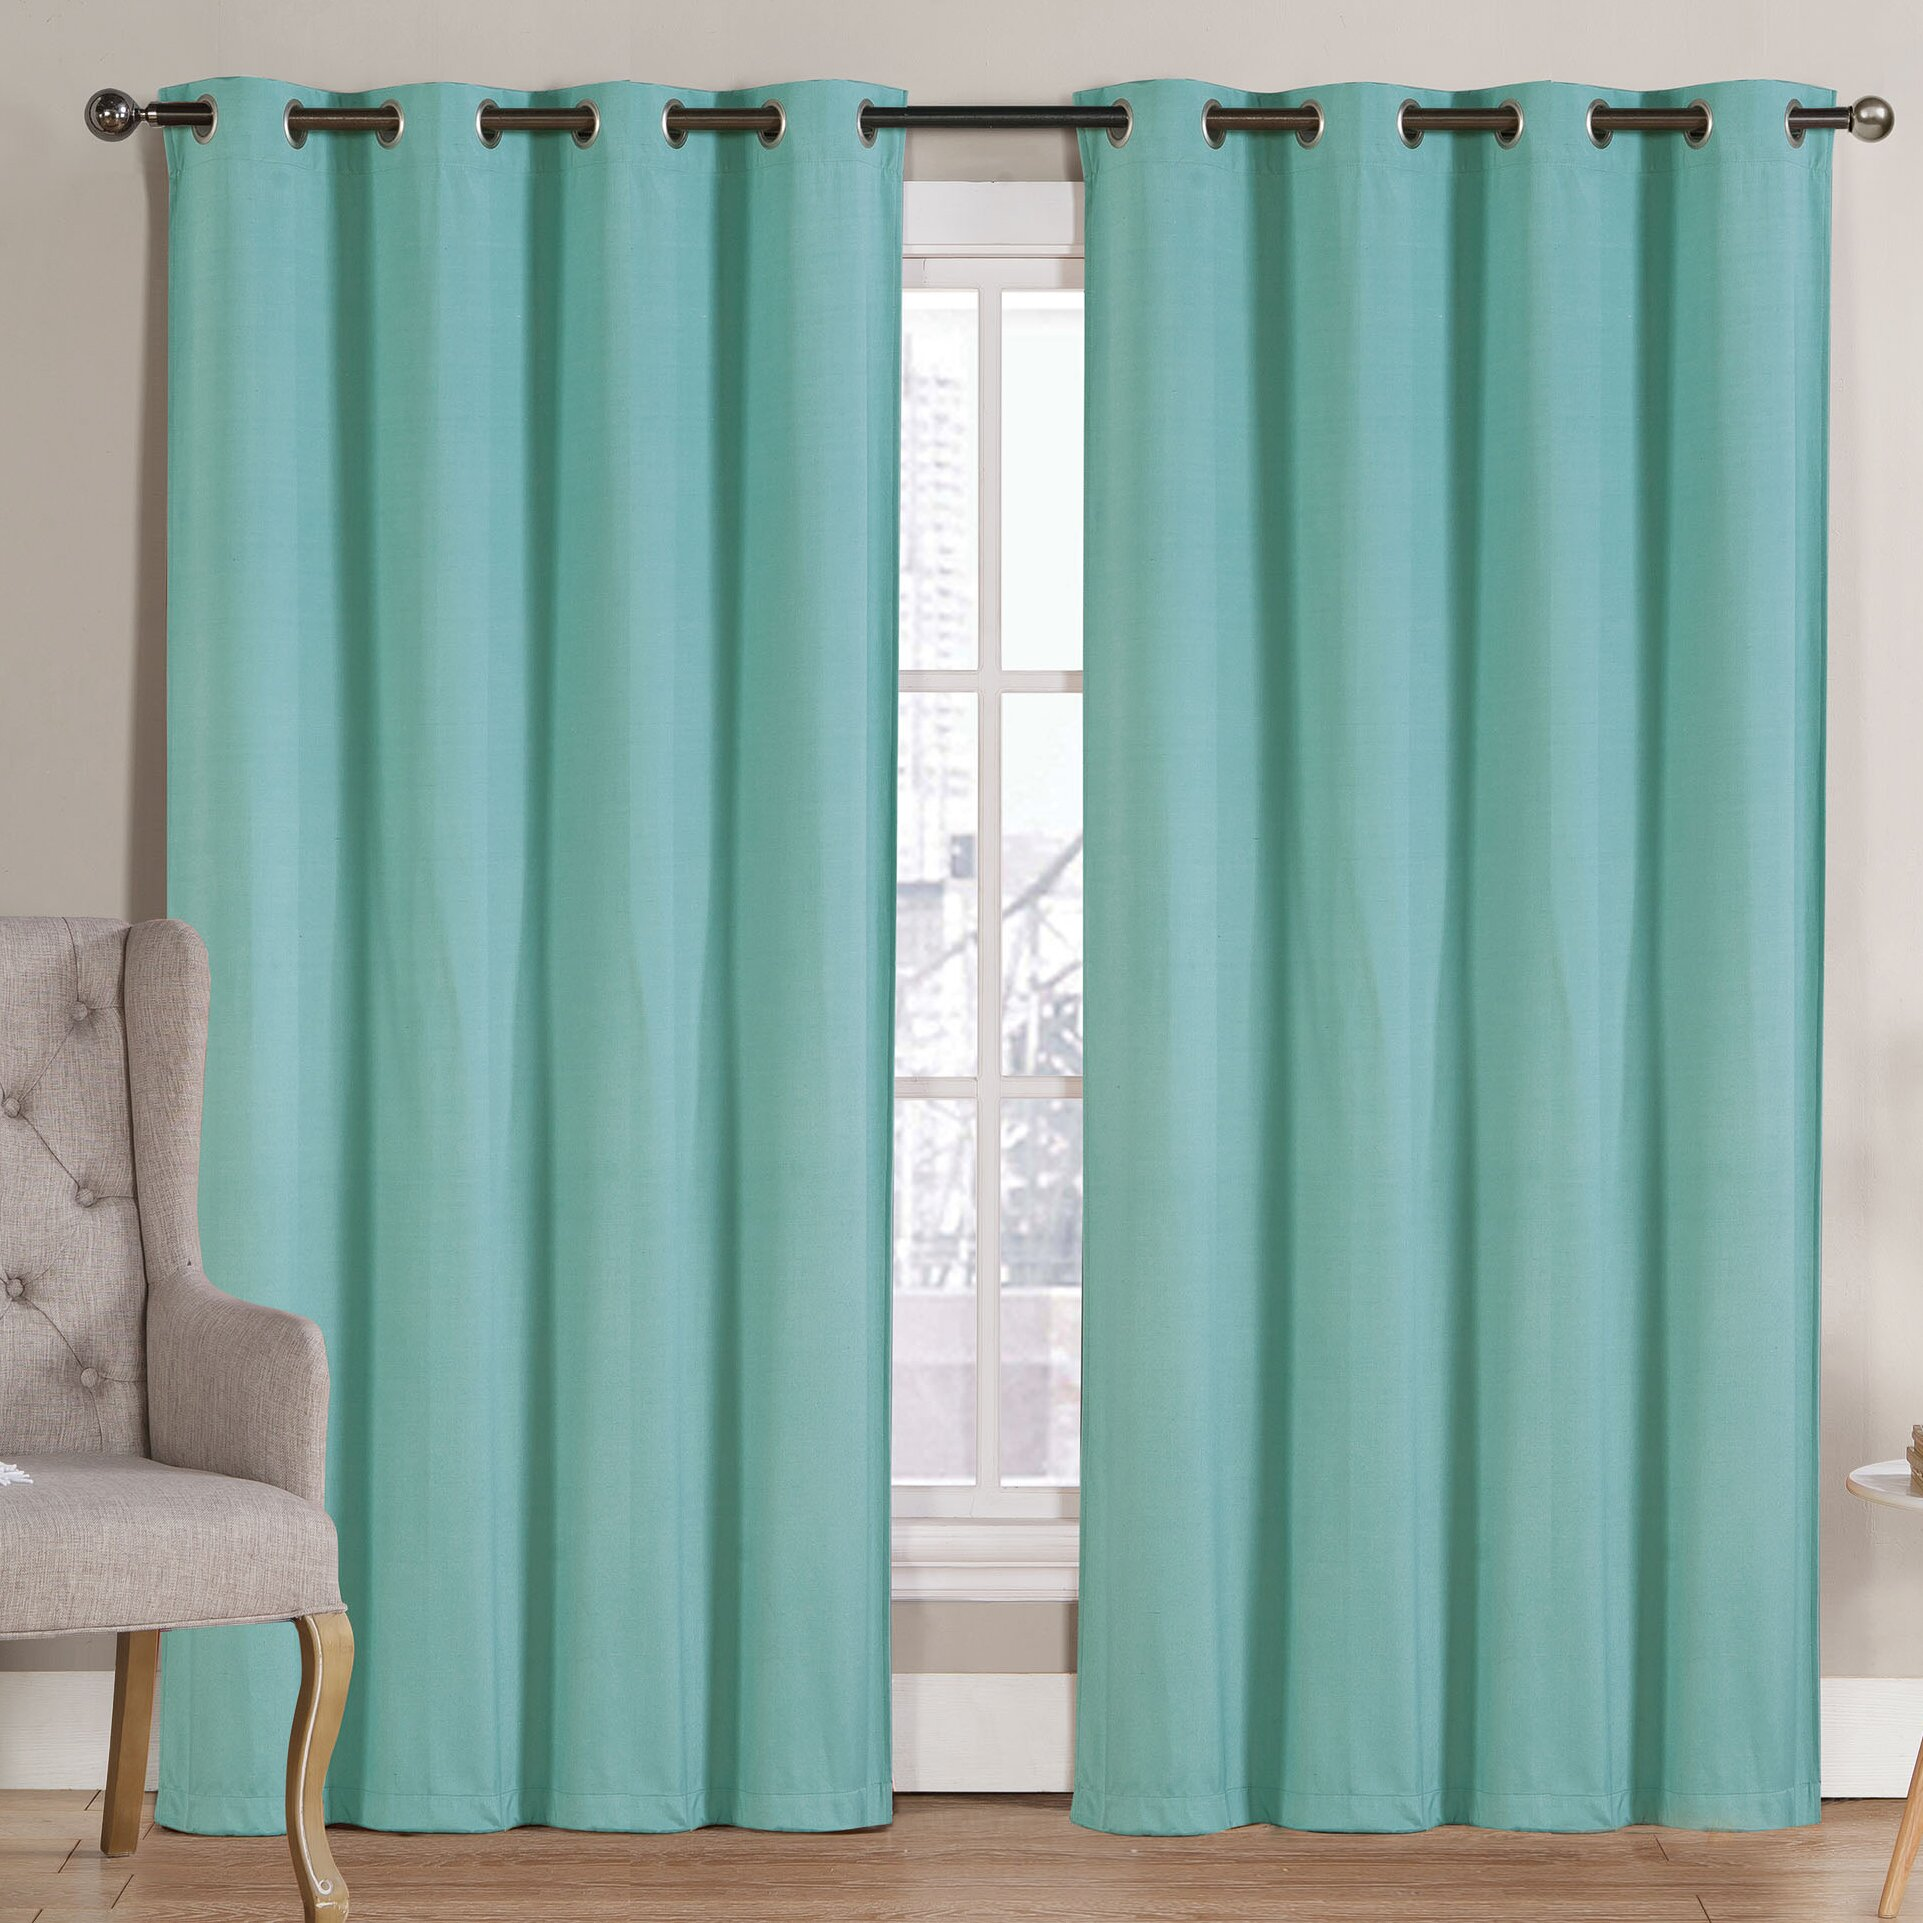 Ruthy 39 S Outlet Thermal Blackout Curtain Panels Reviews